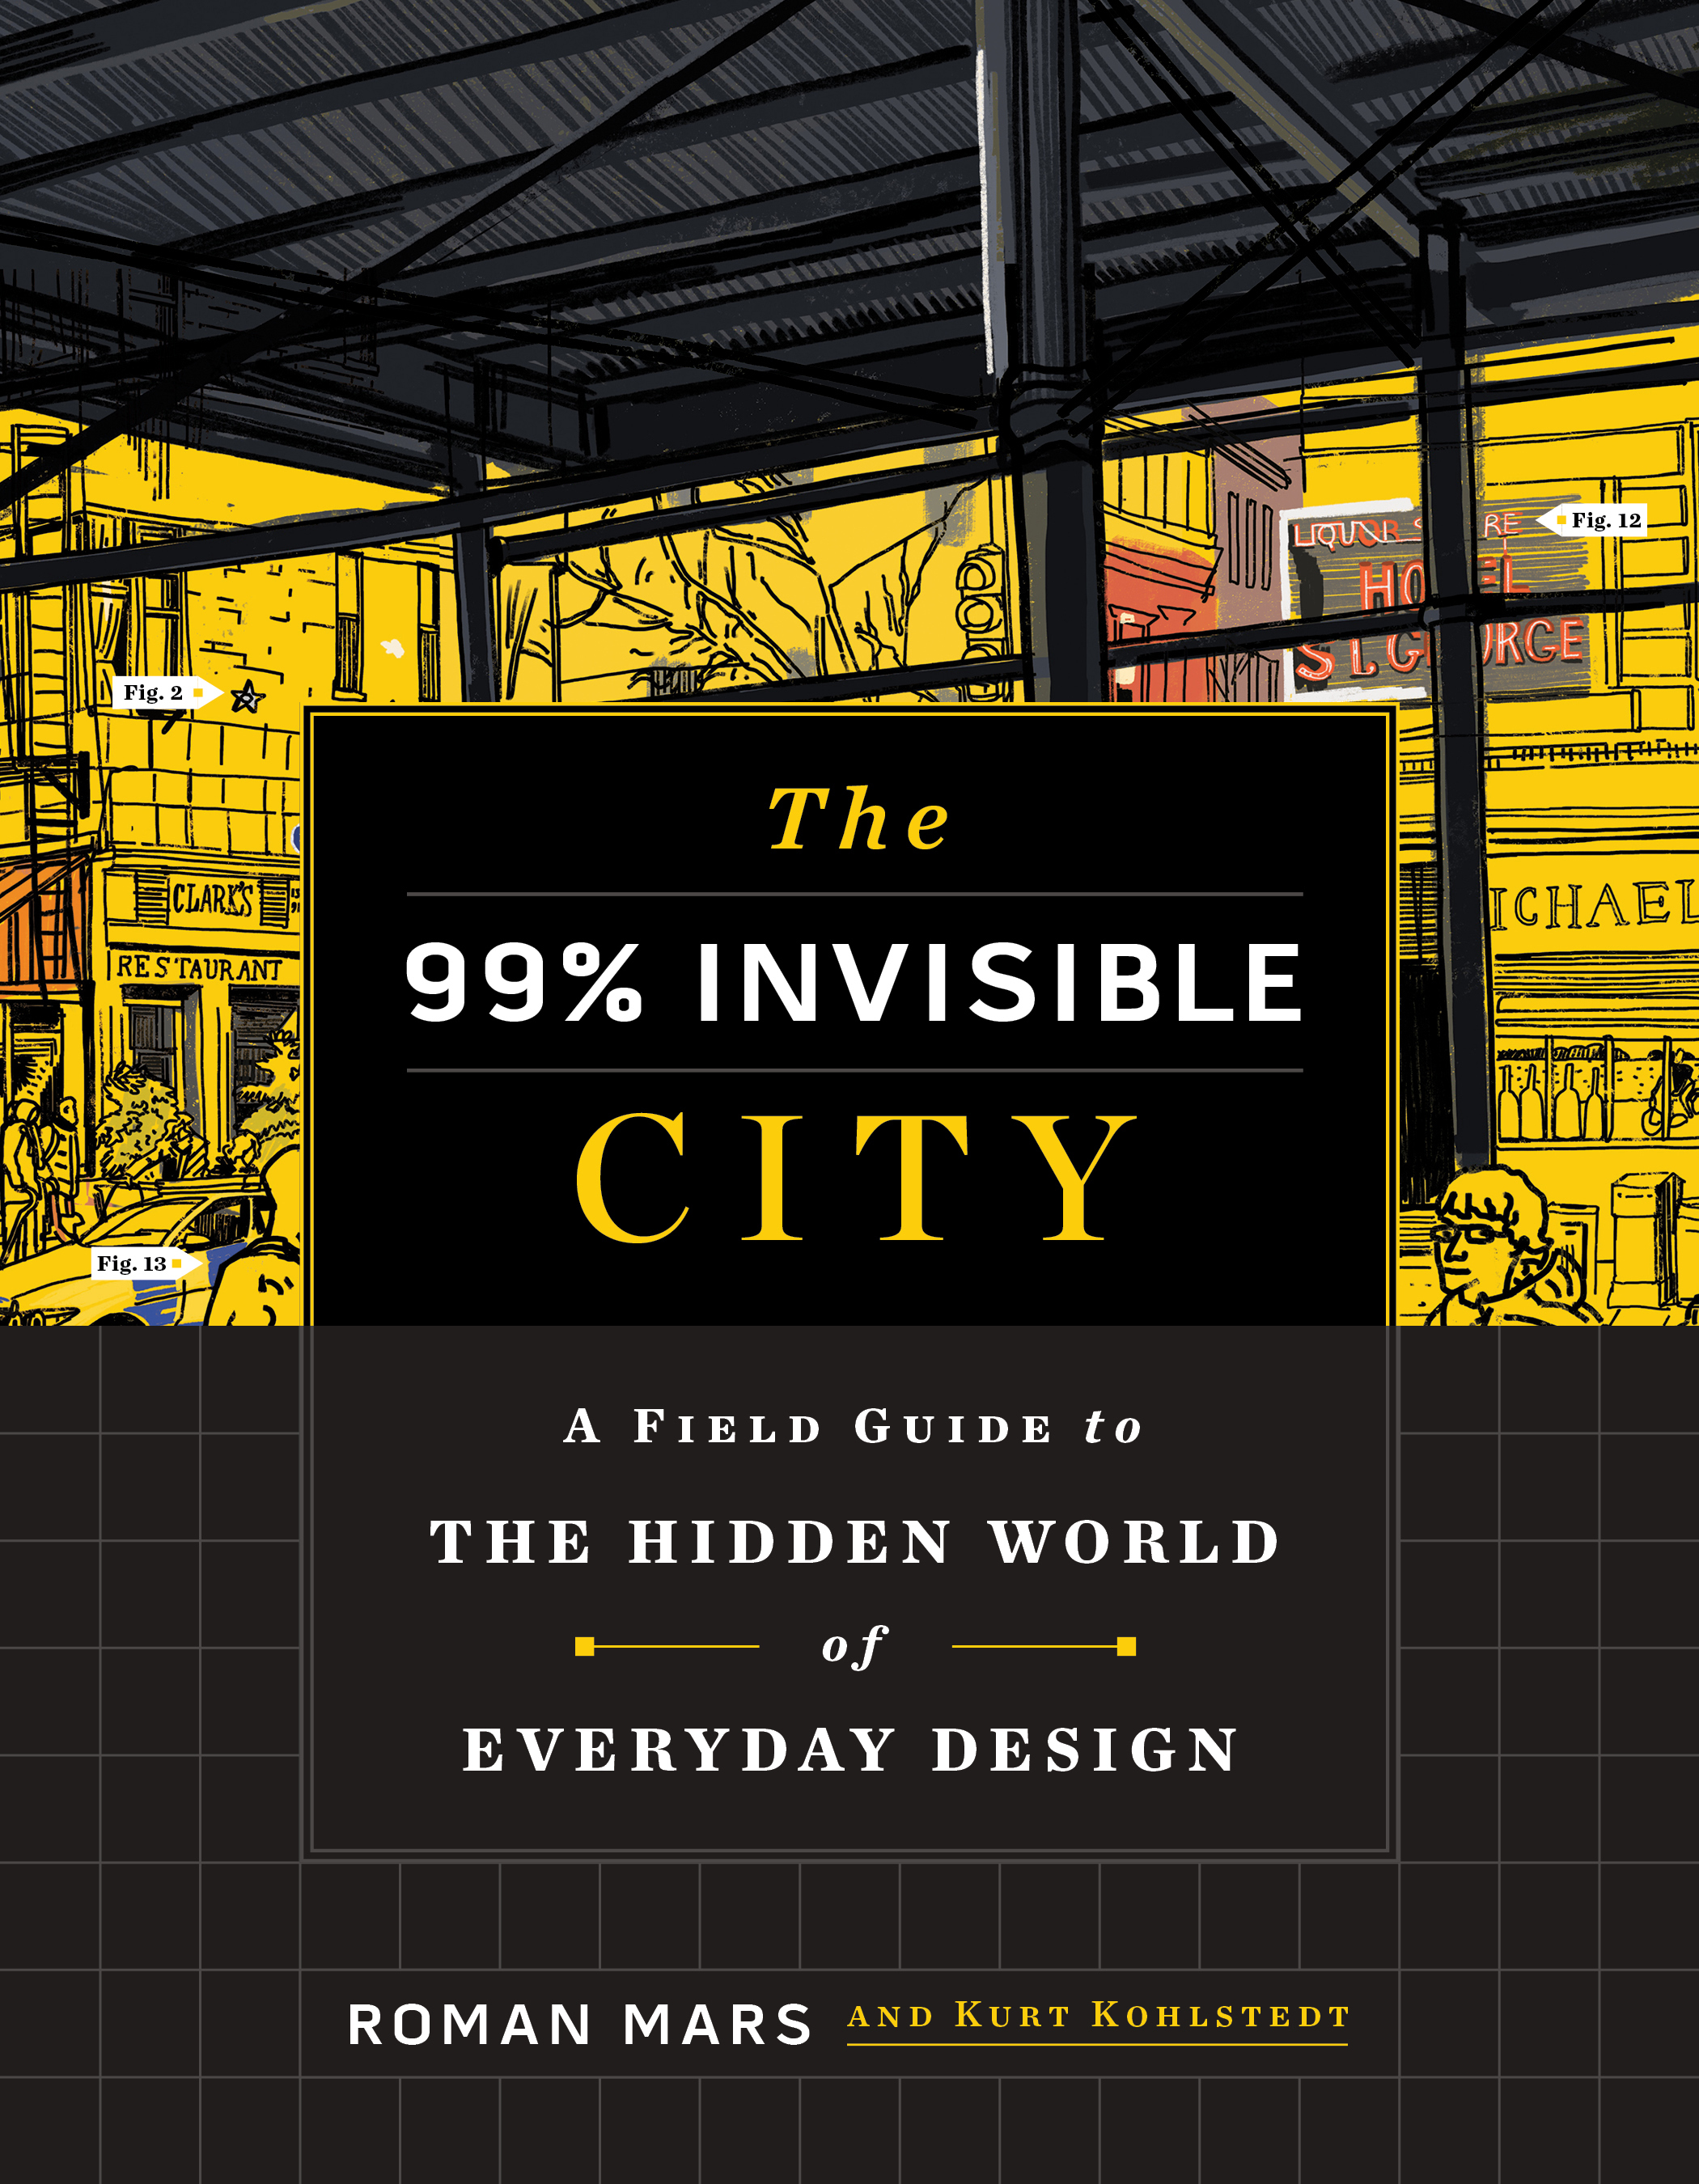 The 99% Invisible City: A Field Guide to the Hidden World of Everyday Design by Roman Mars, Kurt Kohlstedt